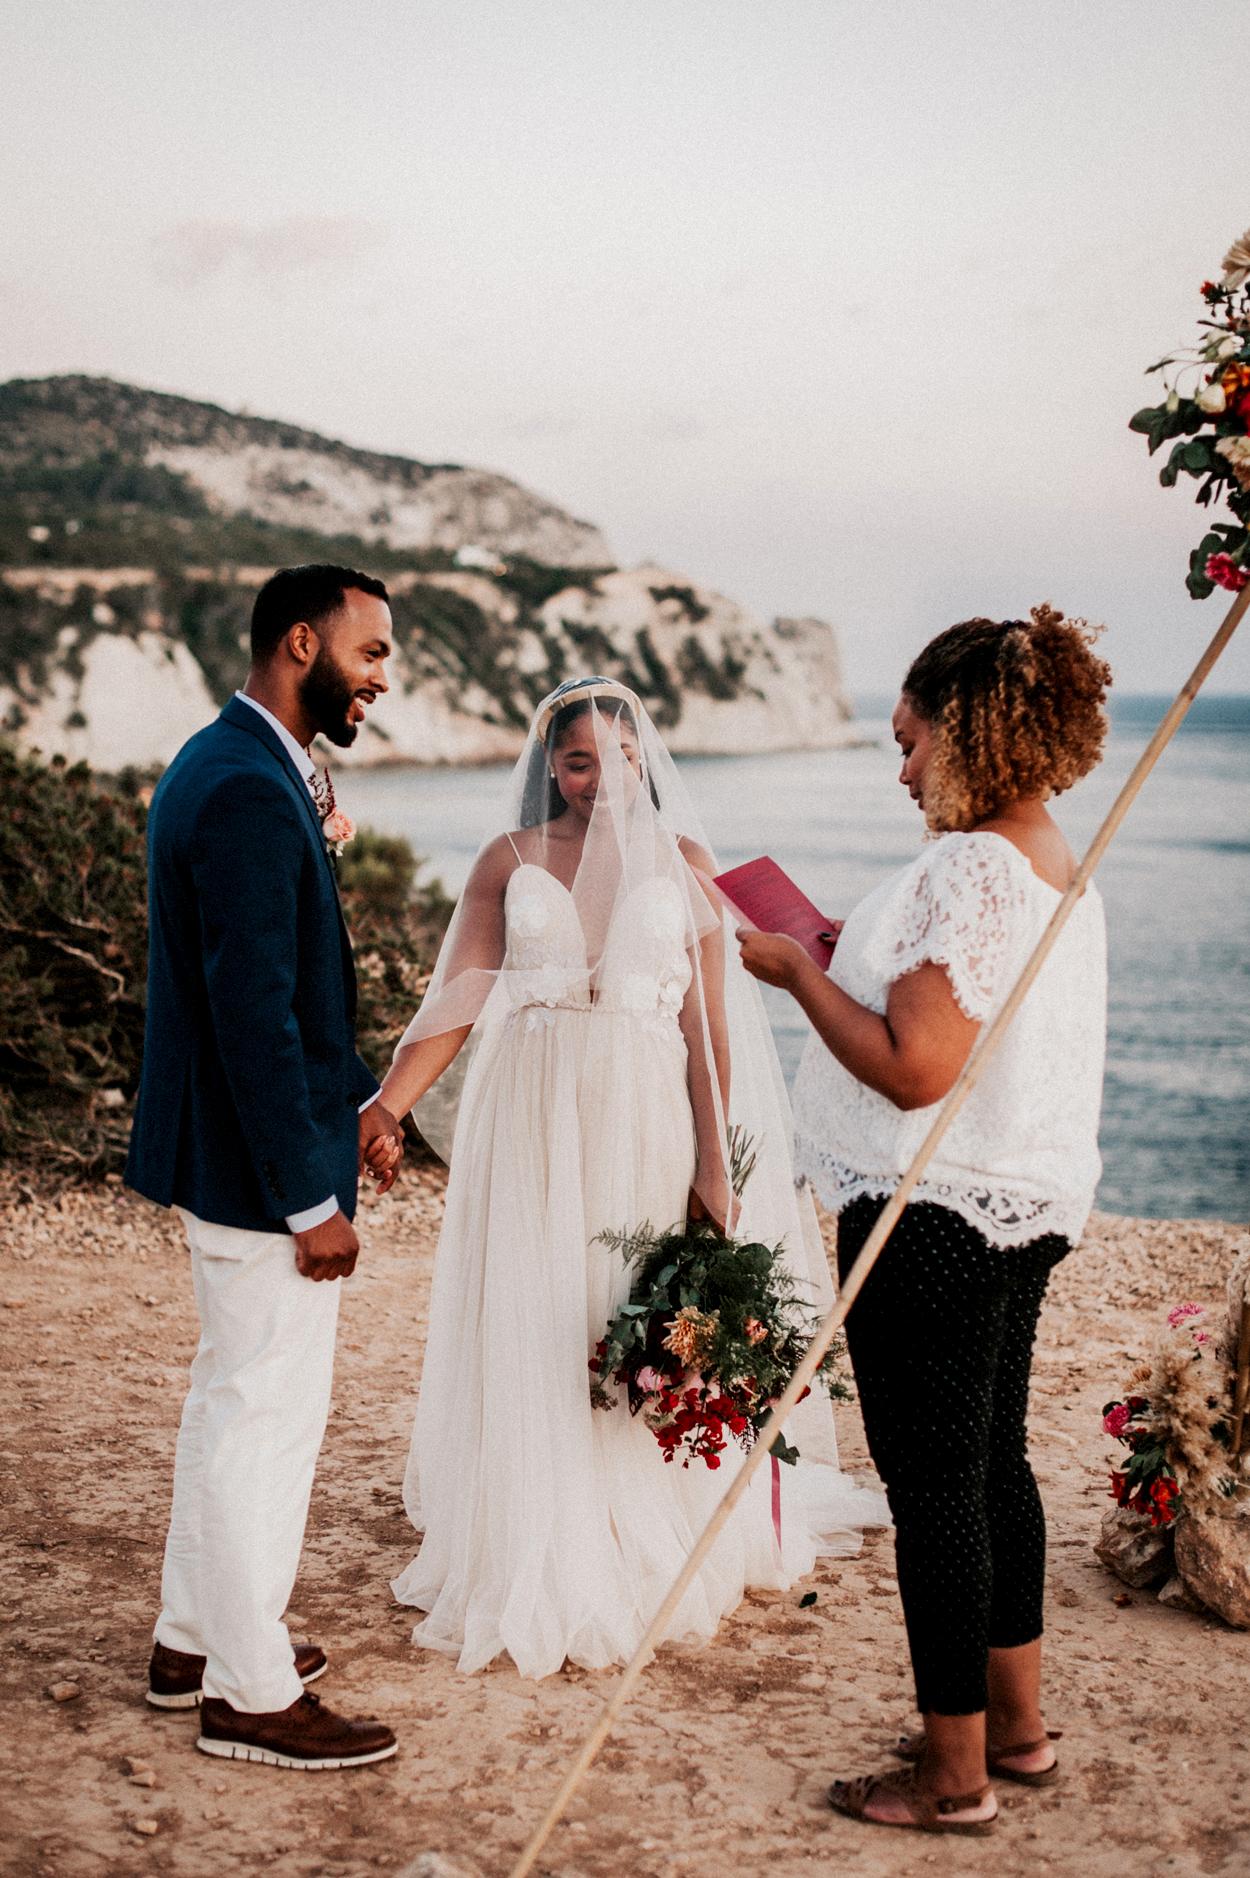 couple exchanges vows near water overlooking island